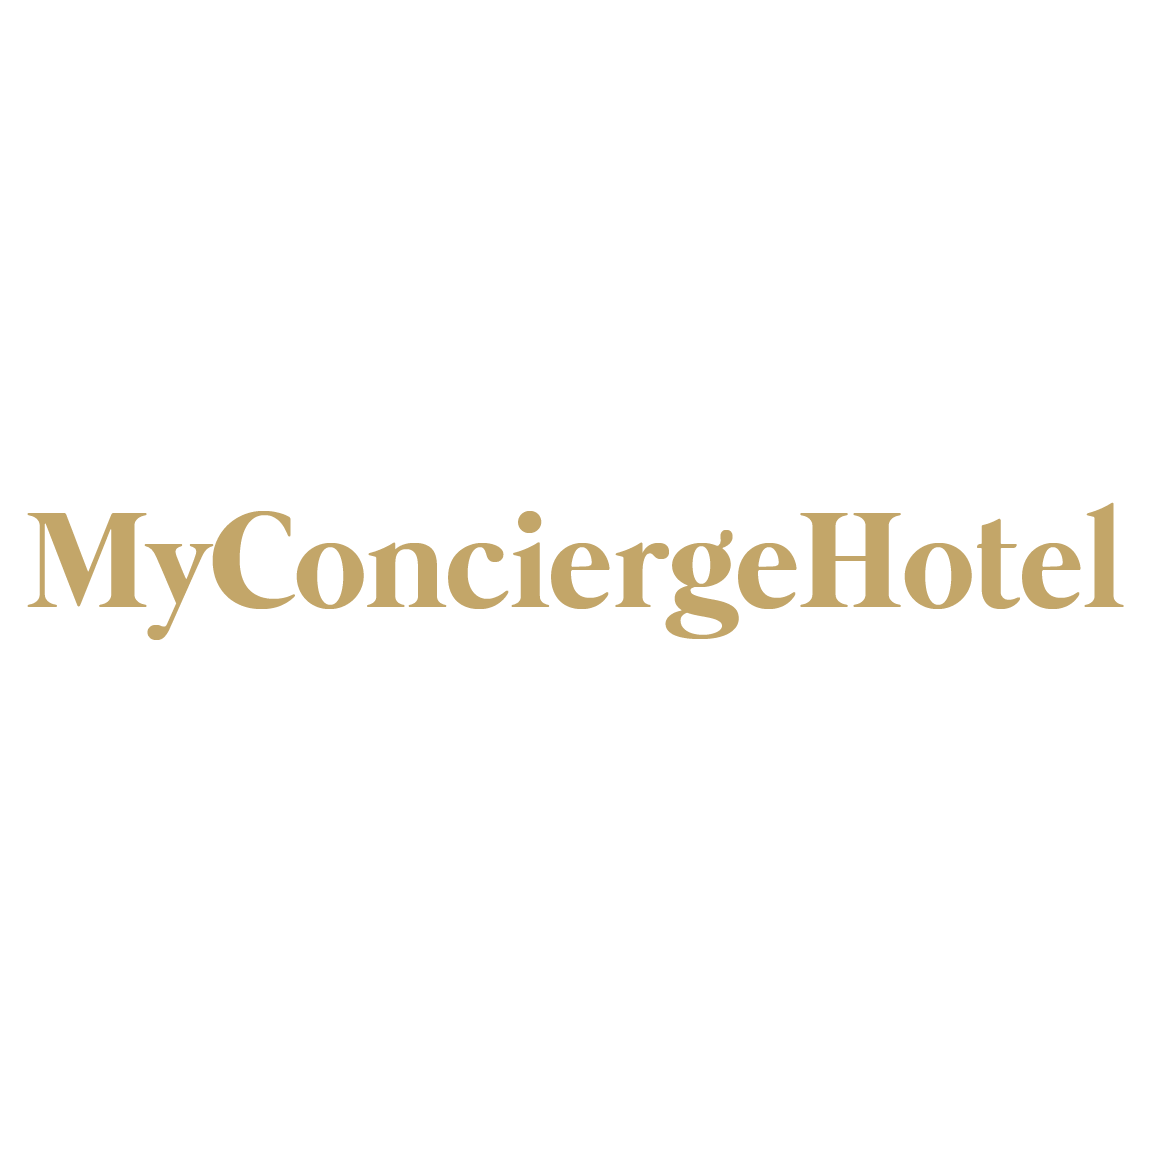 myconciergehotel